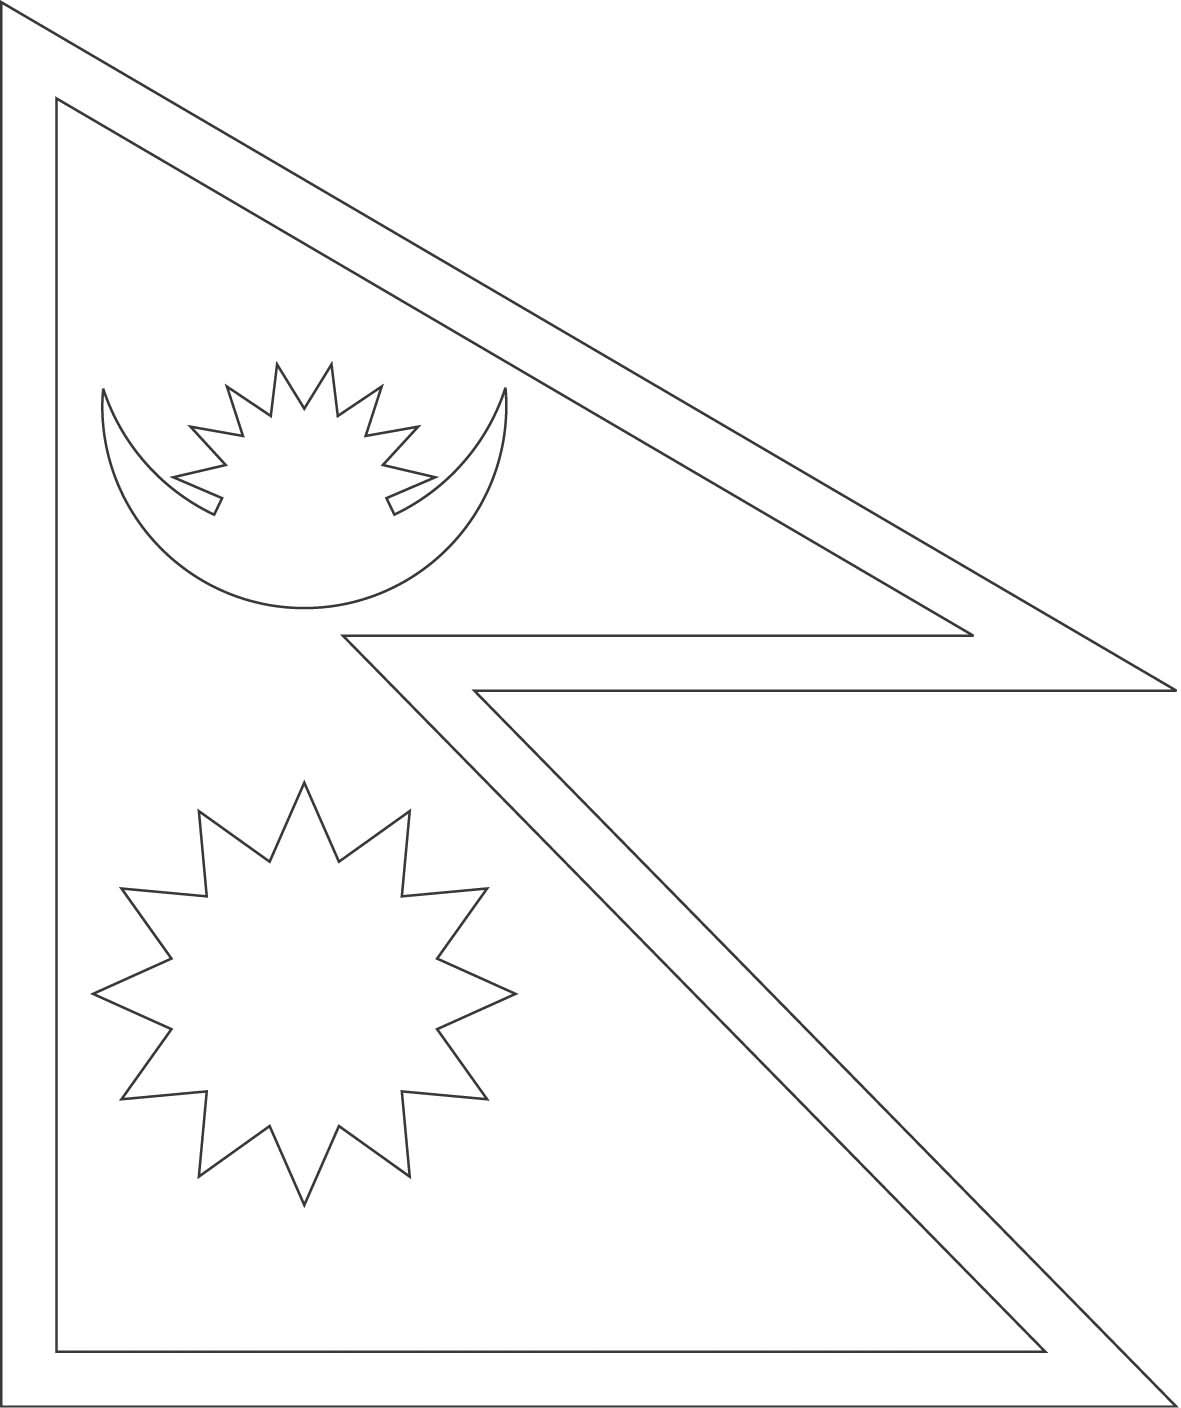 nepal flag outline nepal flag coloring page gallery flag nepal outline